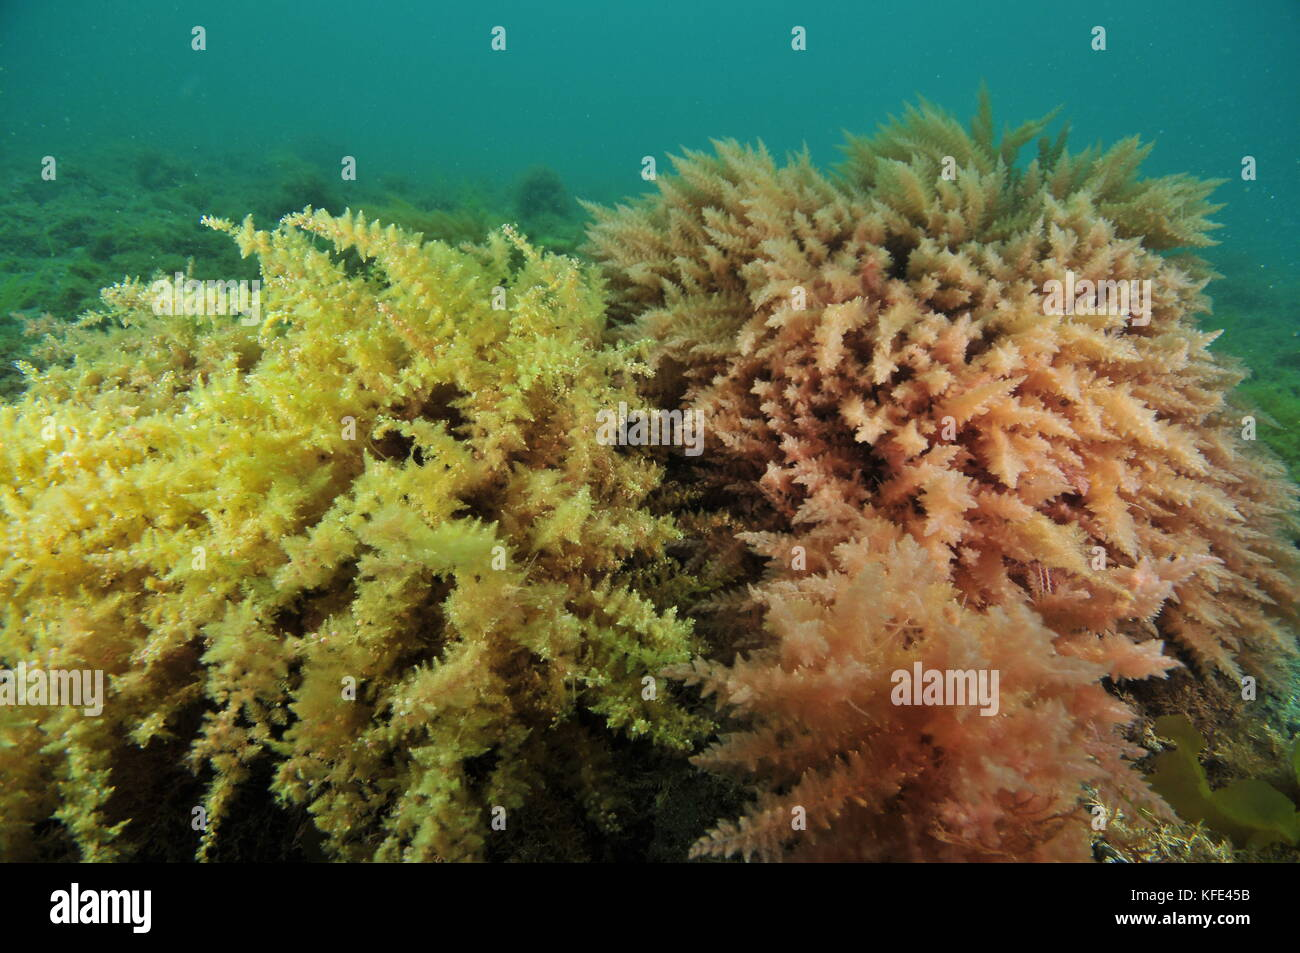 Bushes of yellow and pink seaweeds swirling  in current above flat sea bottom. - Stock Image